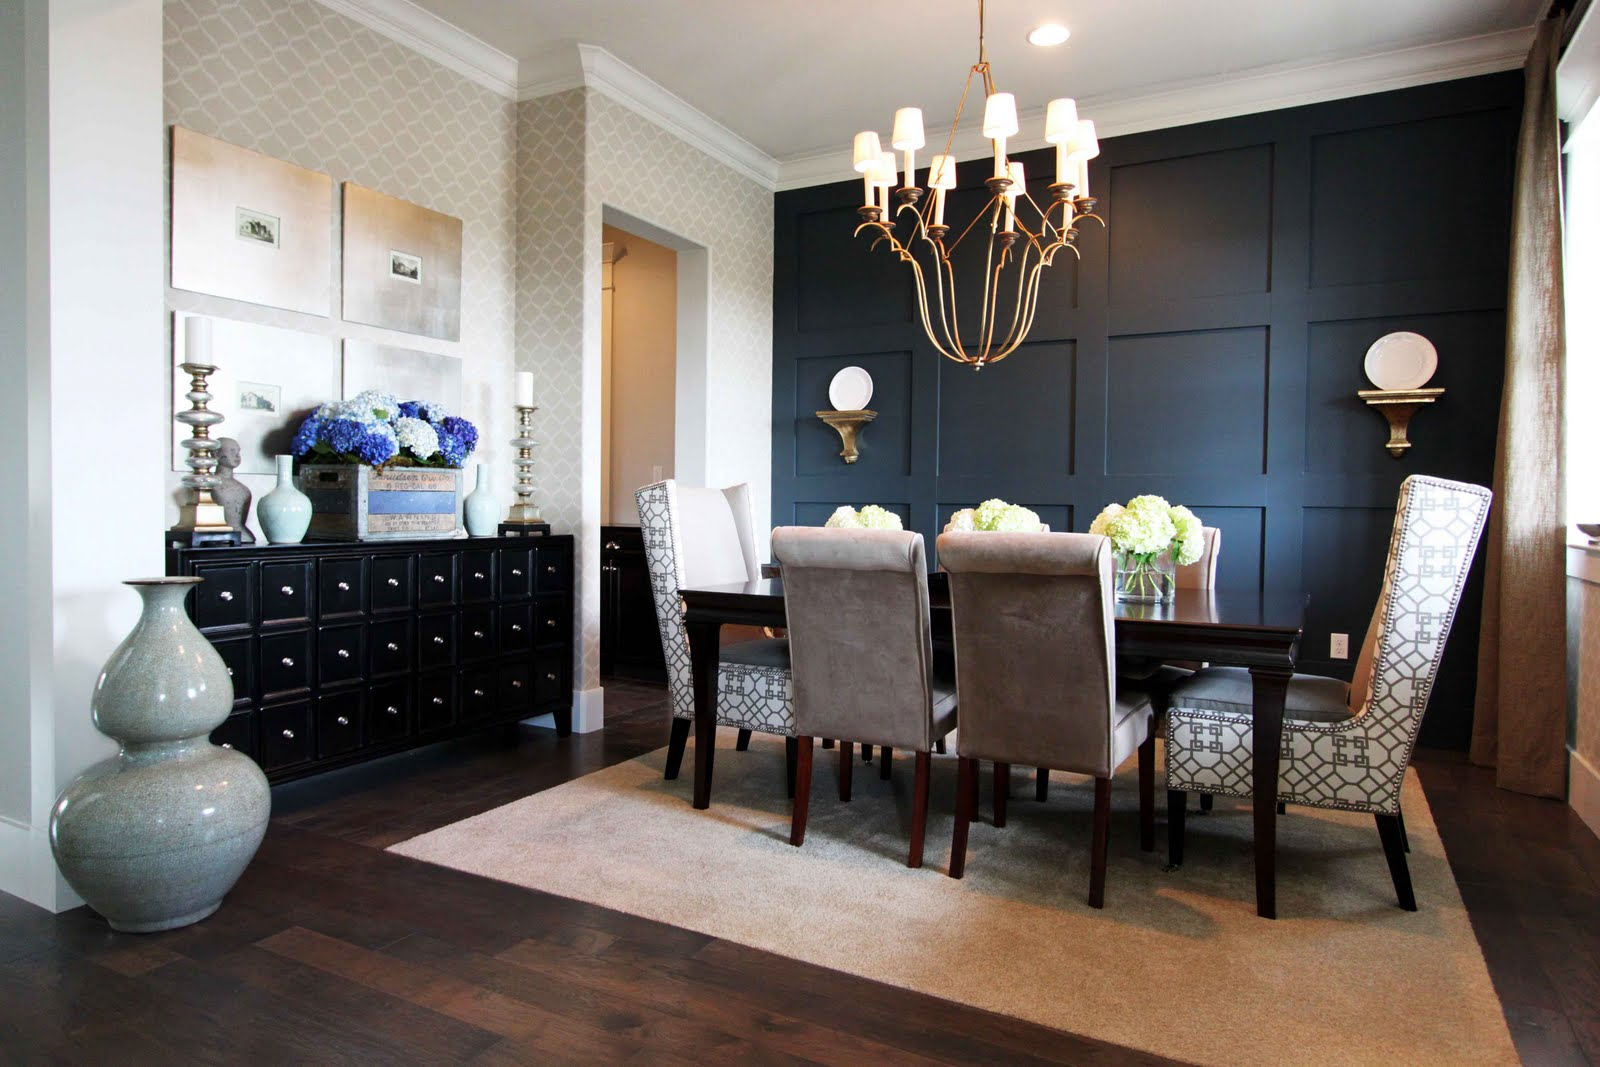 Stiles fischer interior design hgtv showhouse showdown for Ideas for dining room walls